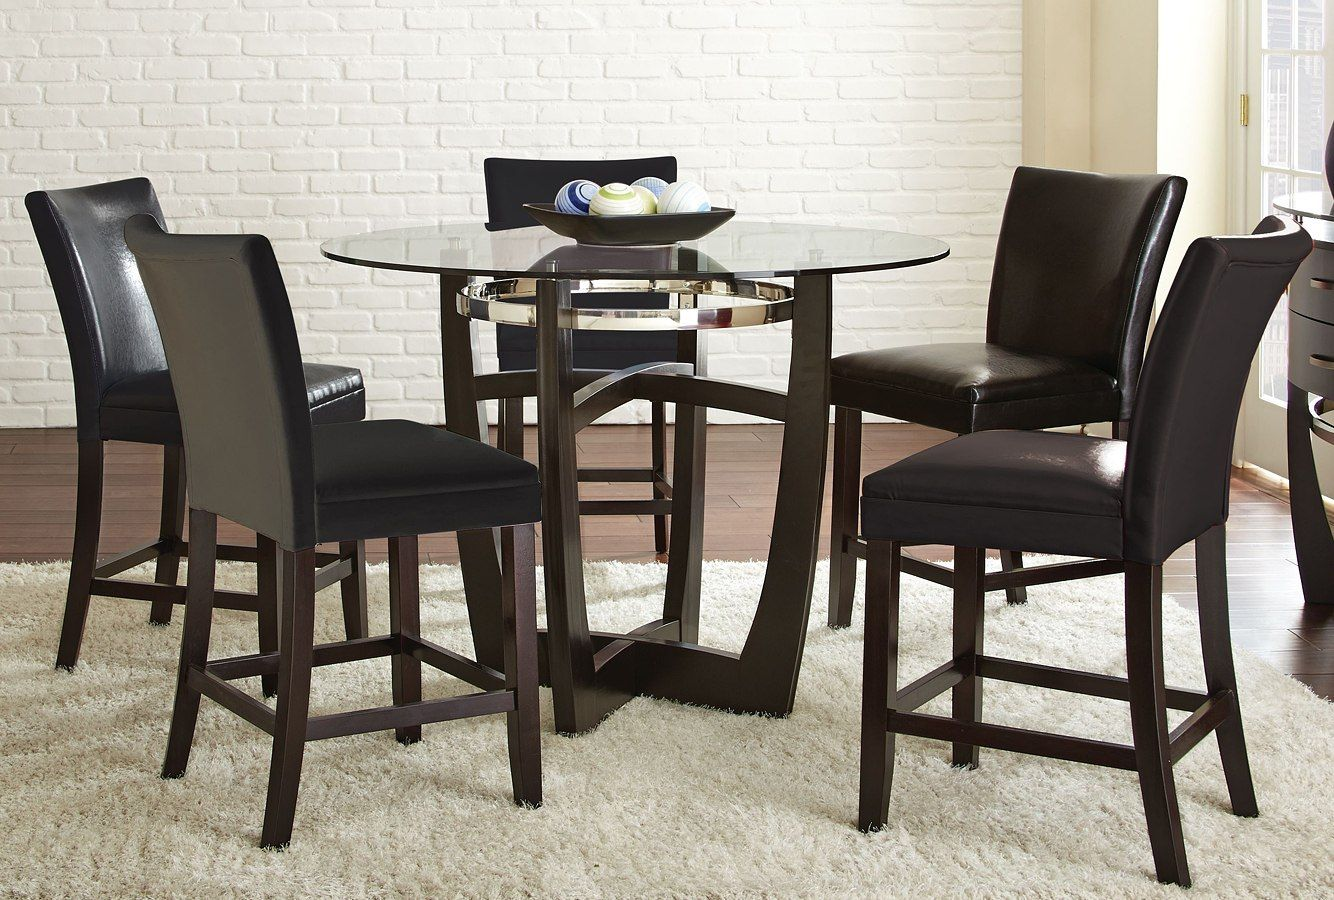 Matinee Counter Height Dining Set W Black Chairs Counter Height